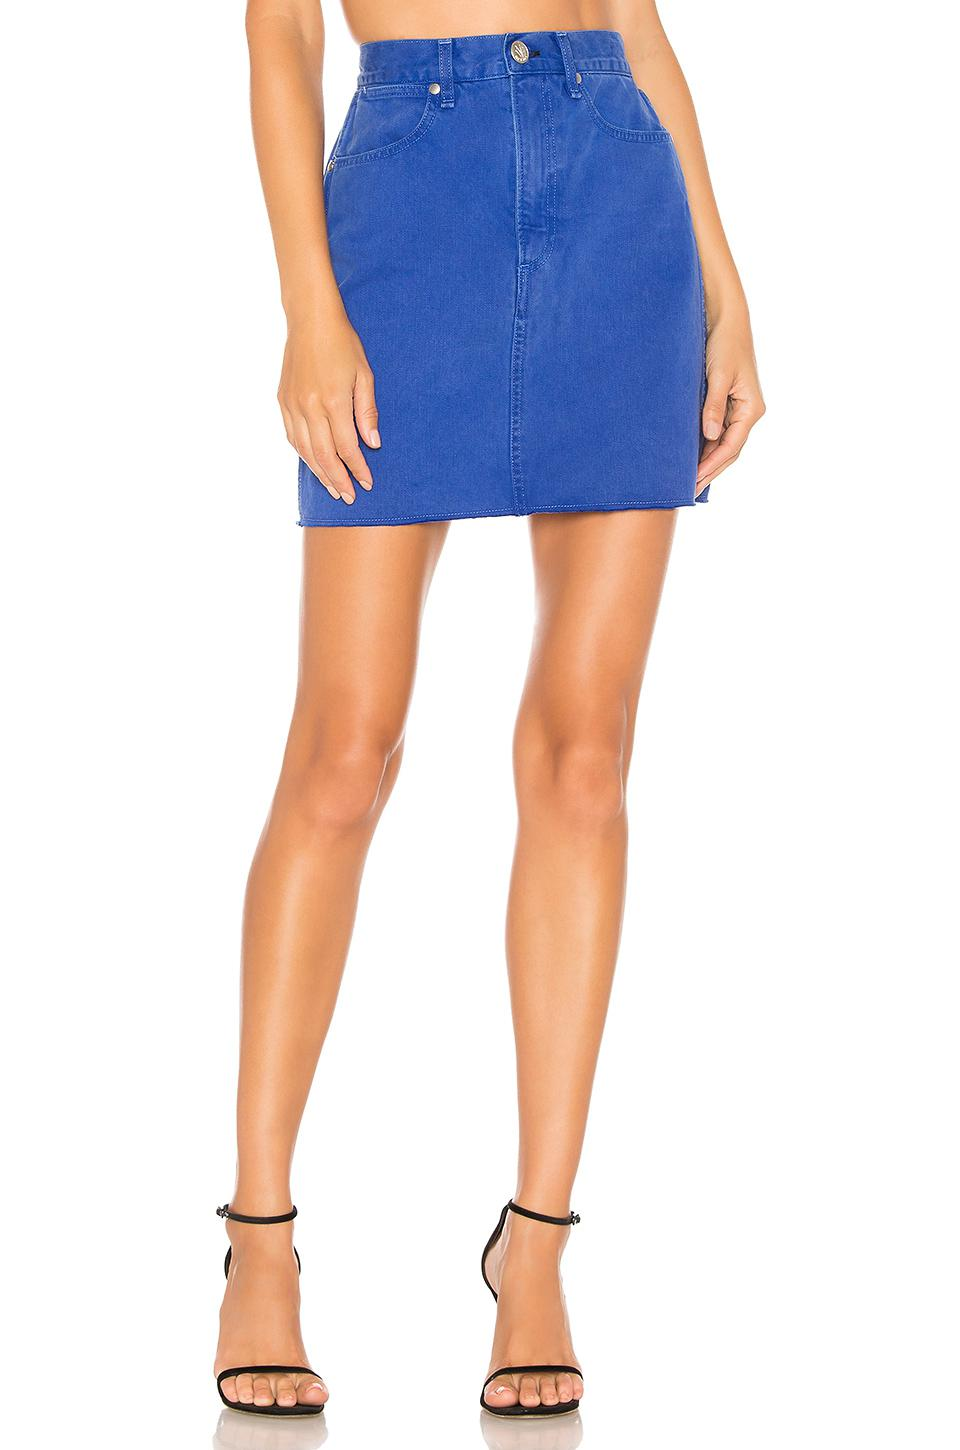 34a977c3a4e6 Lyst - Rag   Bone Moss Skirt in Blue